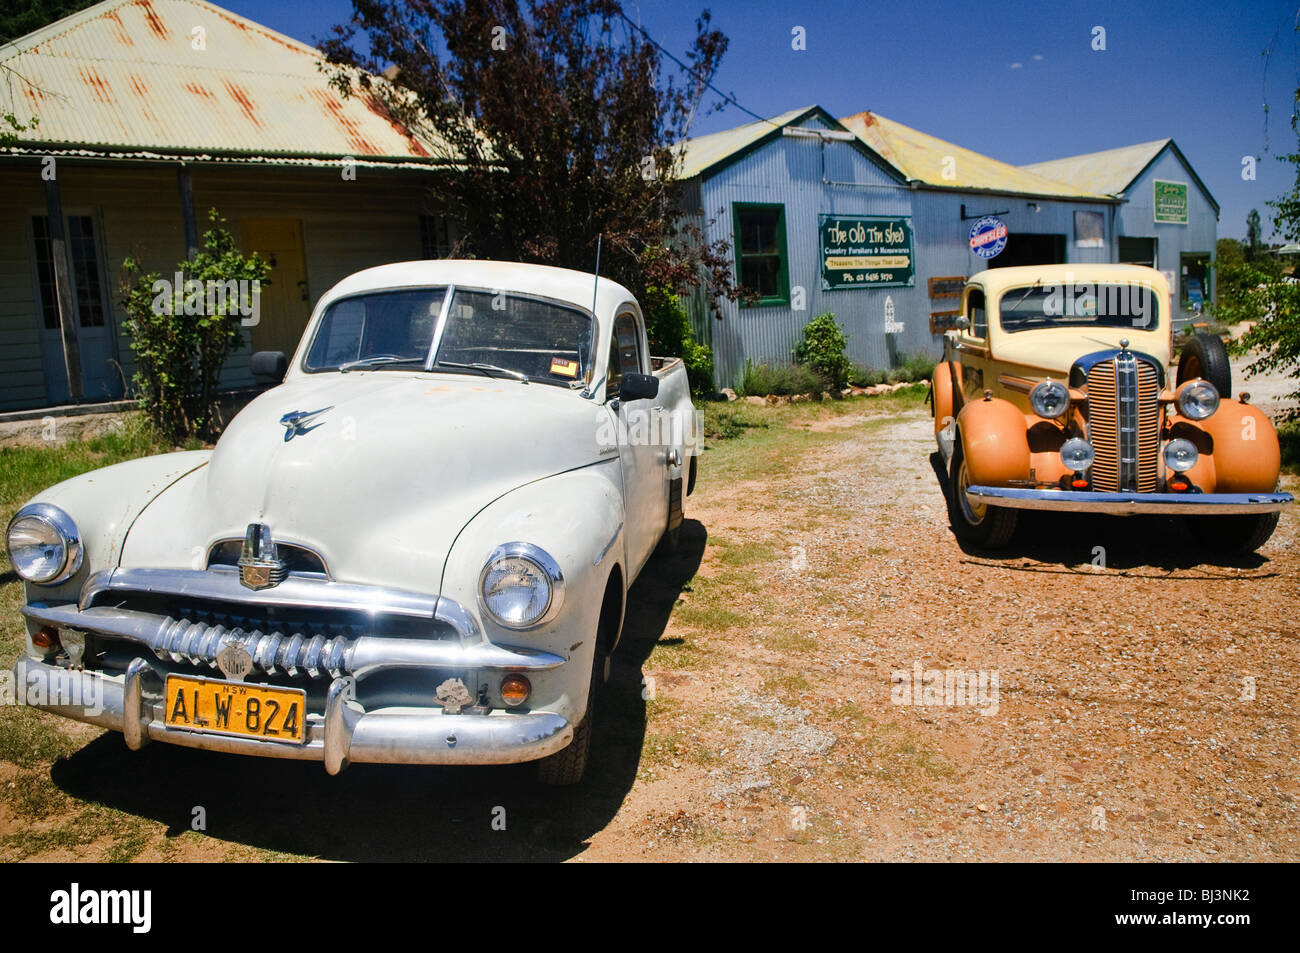 Holden Ute Stock Photos & Holden Ute Stock Images - Alamy